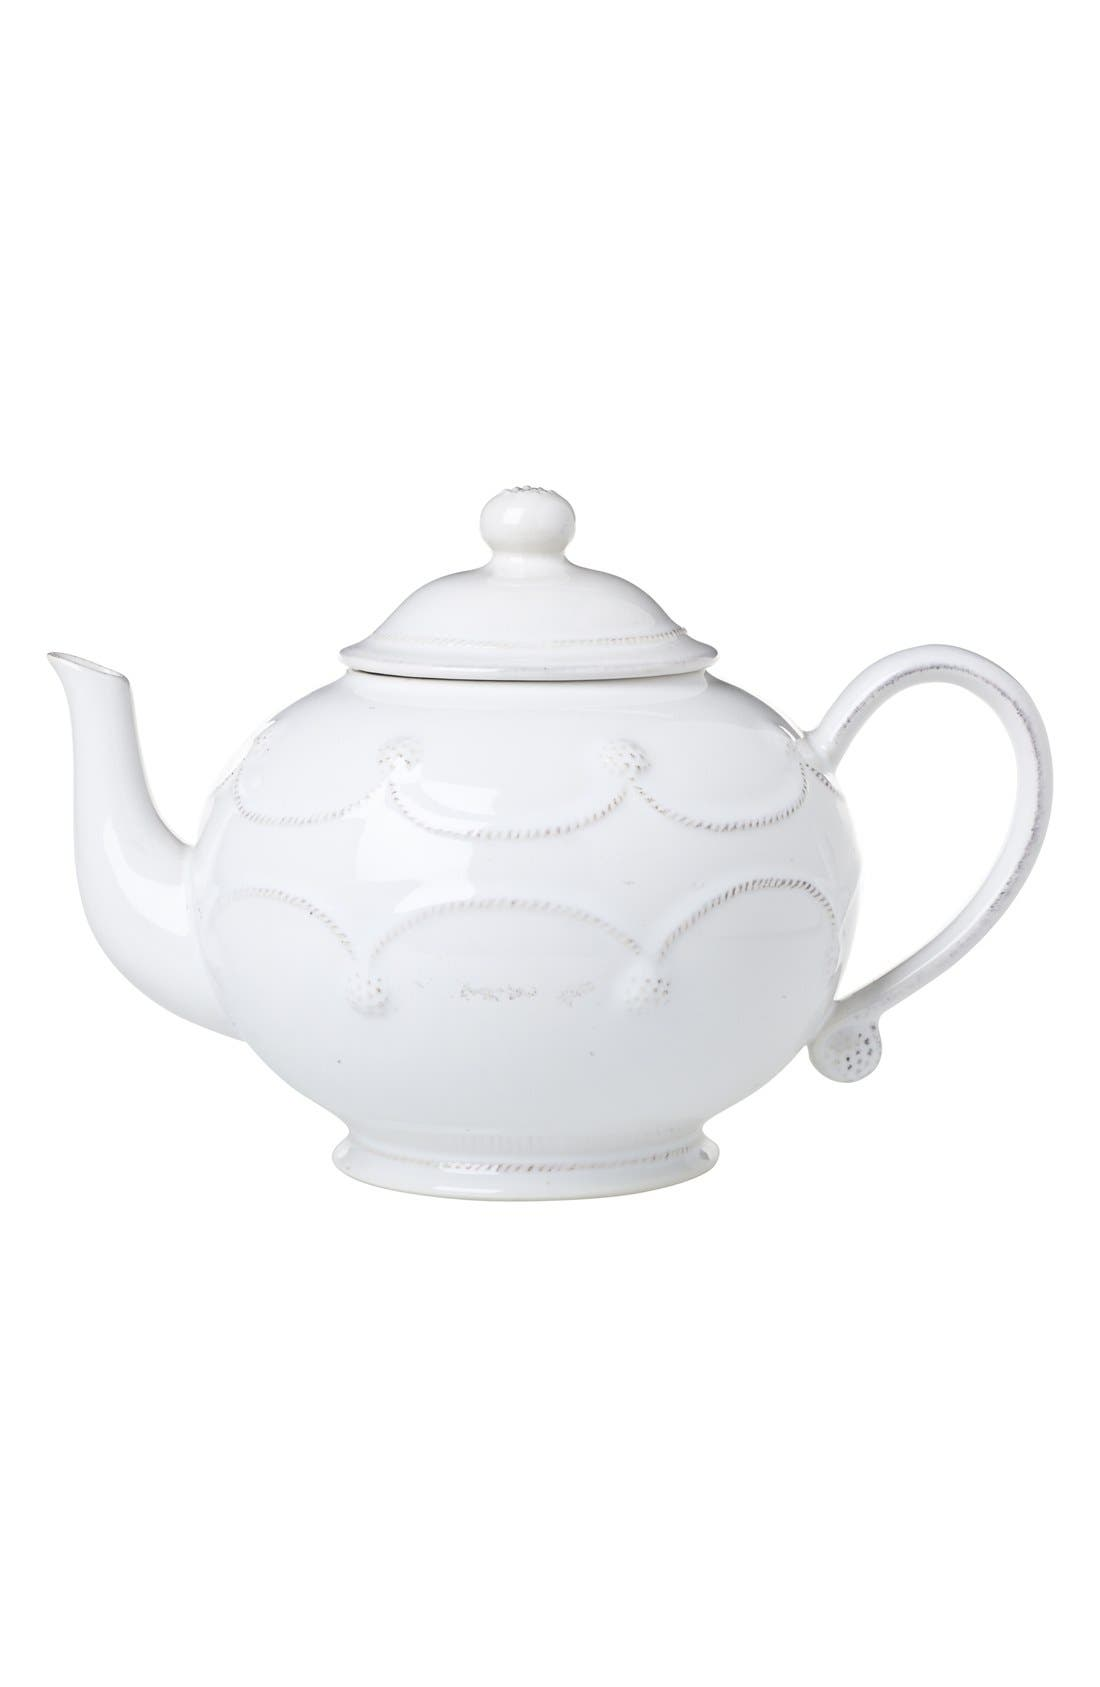 'Berry and Thread' Ceramic Teapot,                             Main thumbnail 1, color,                             100